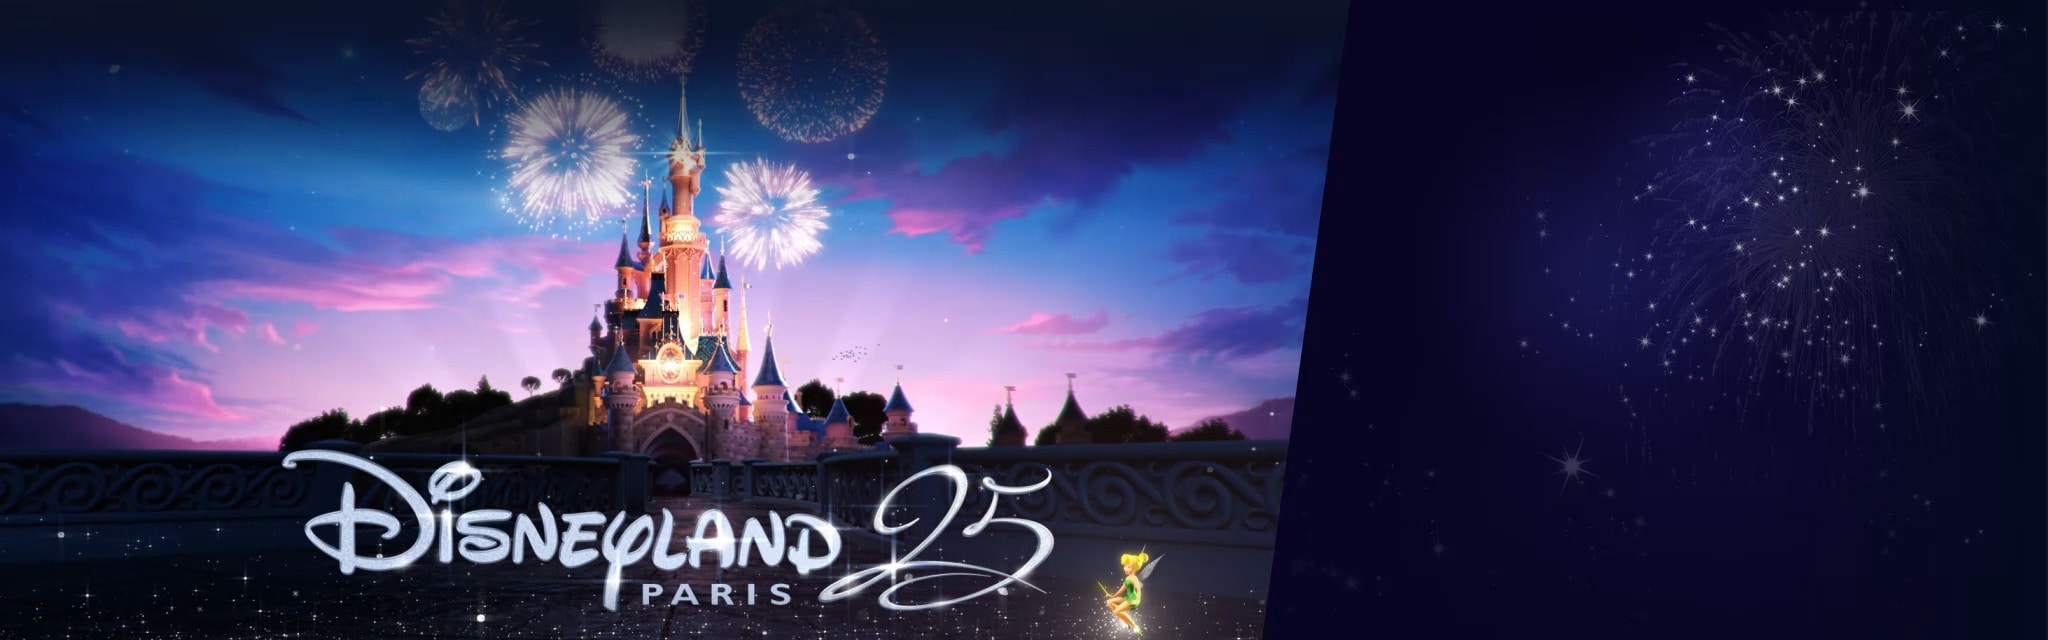 Disneyland Paris réserver animated (hero promo)